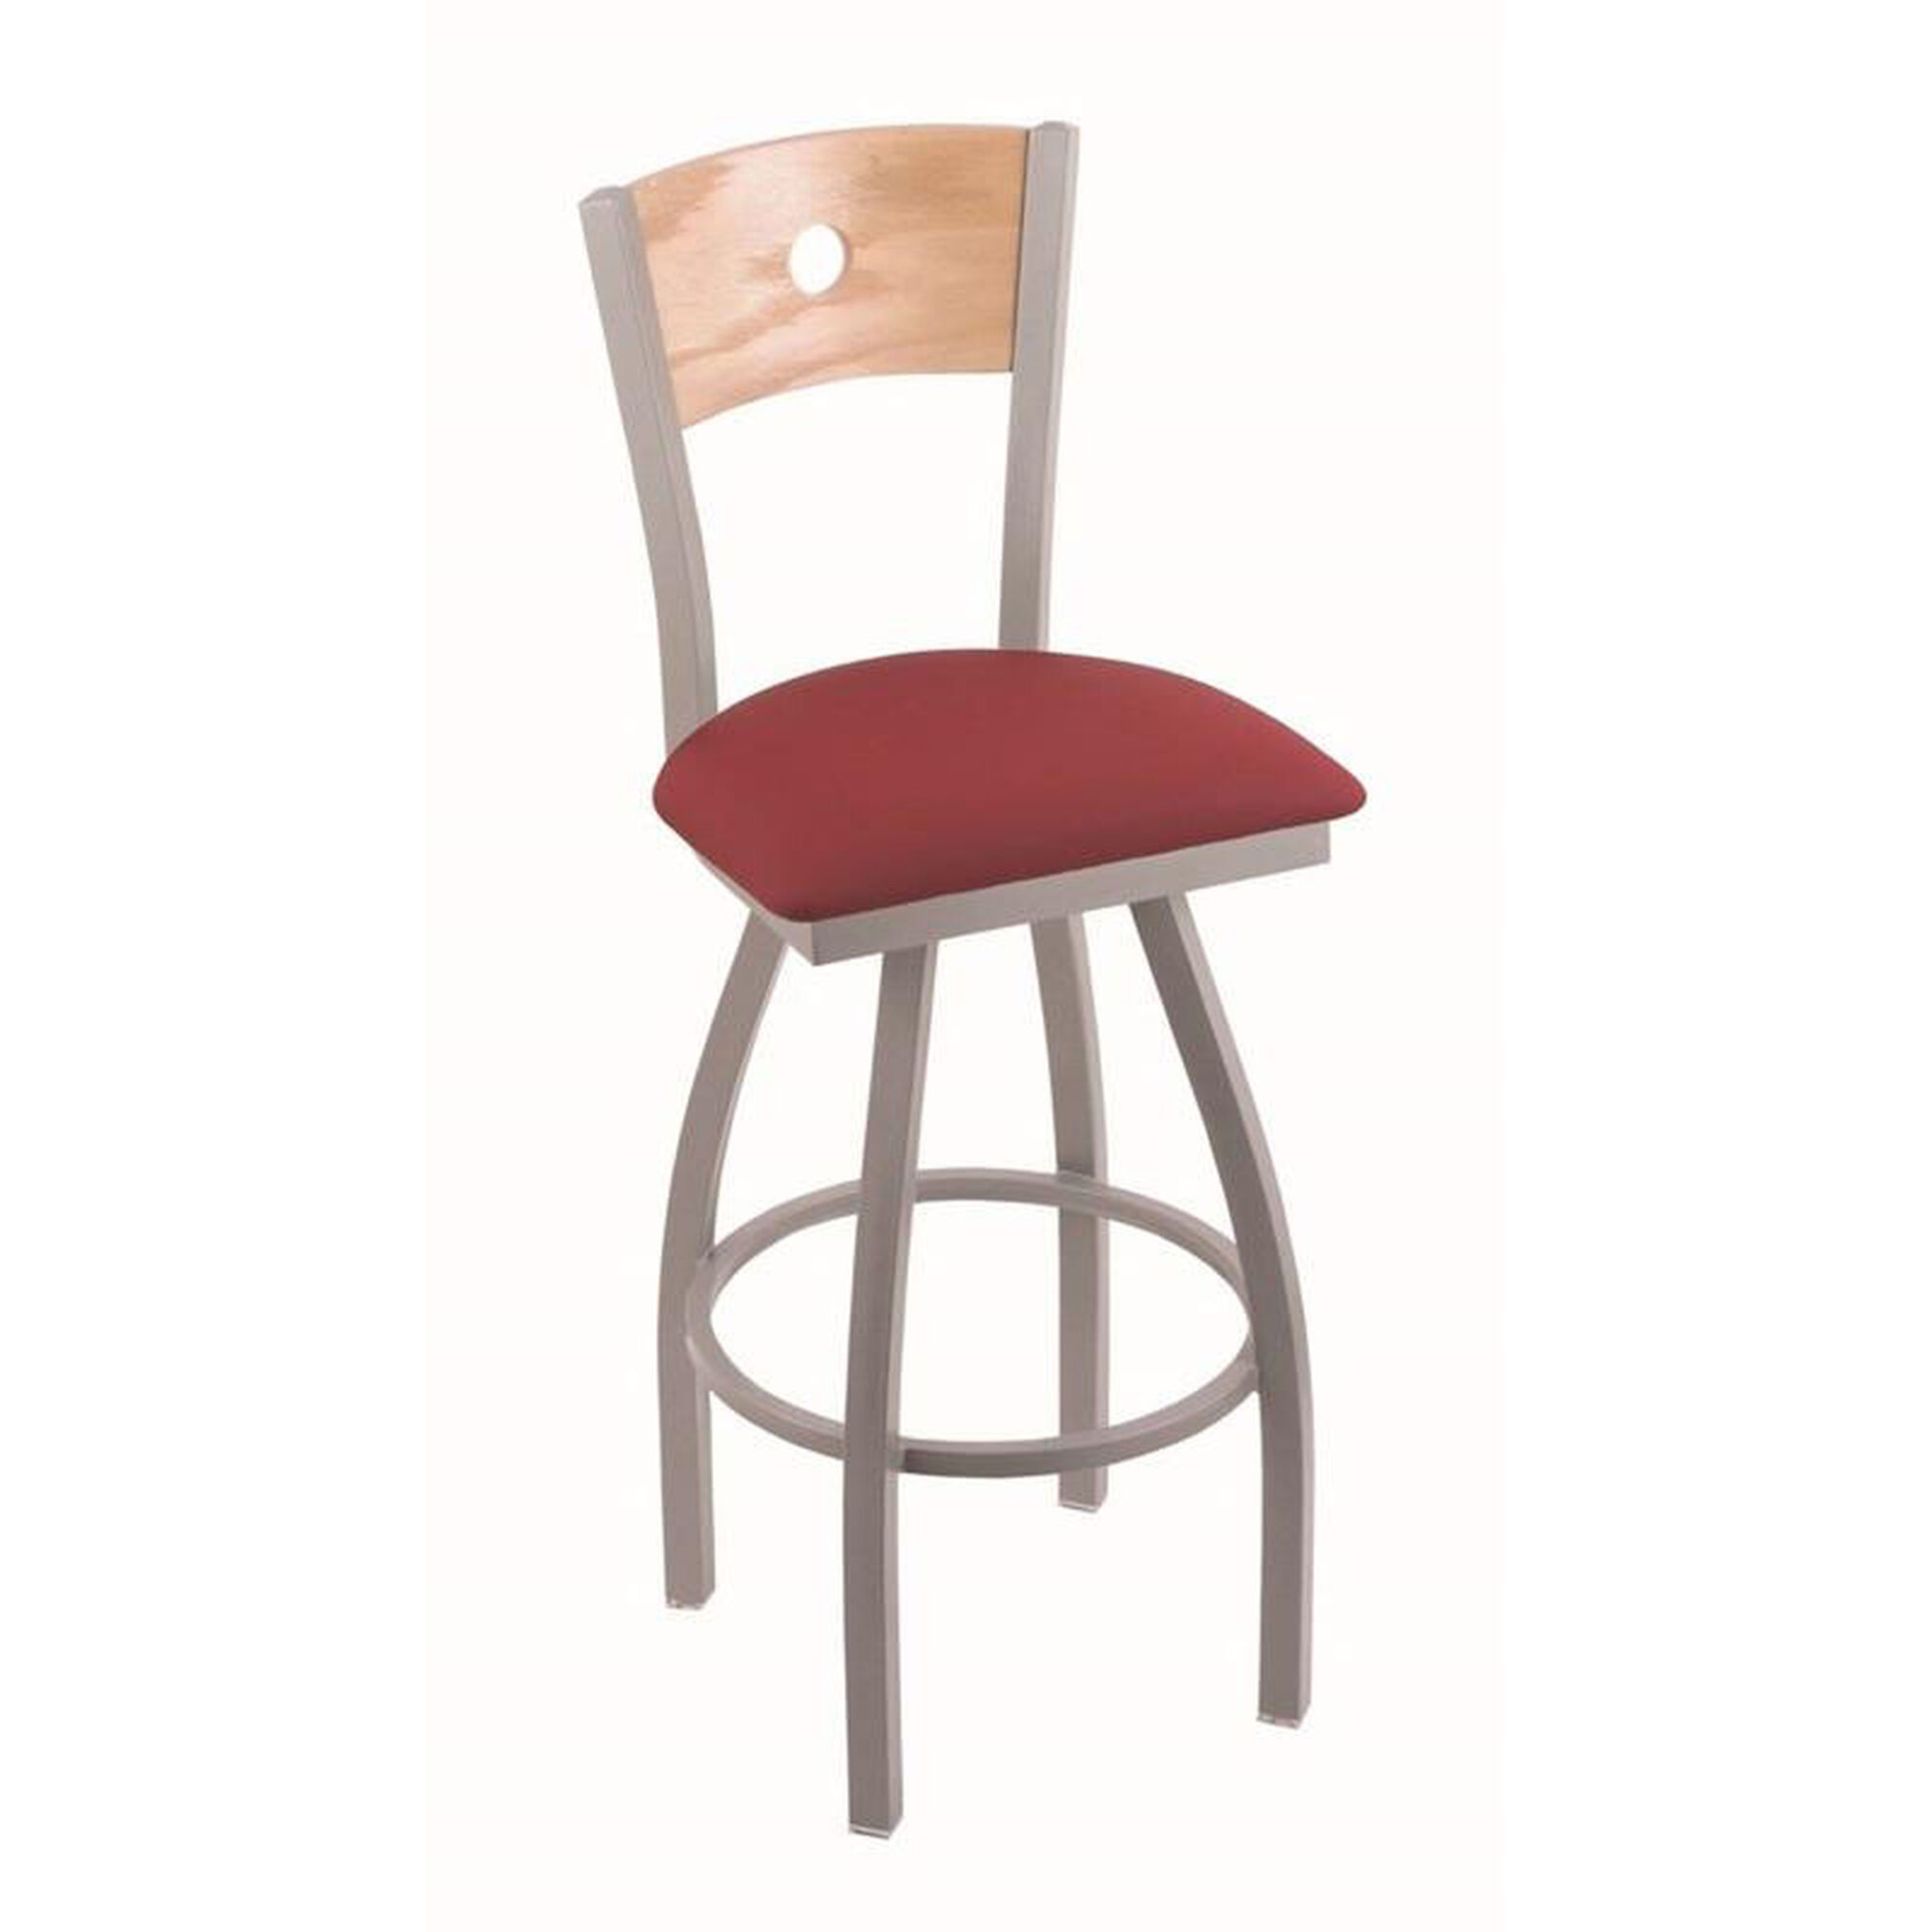 The Holland Bar Stool Co Voltaire 25 Anodized Nickel  : THEHOLLANDBARSTOOLCO83025ANNATOAKBALWINE HOBMAINIMAGE from www.restaurantfurniture4less.com size 2000 x 2000 jpeg 106kB